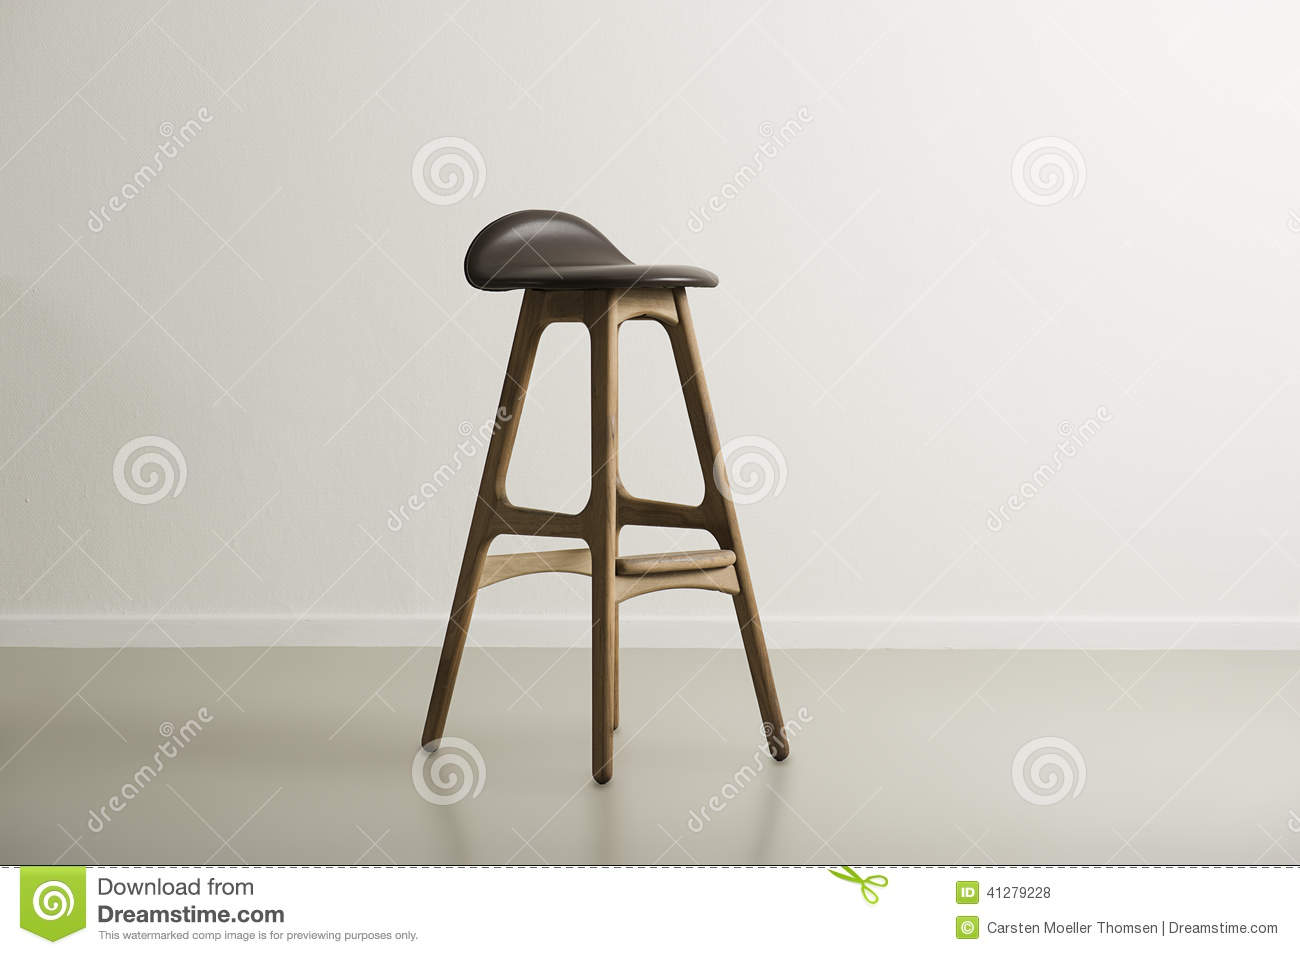 Superb img of Wooden bar stool with a molded leather seat standing centered in a  with #85A724 color and 1300x955 pixels